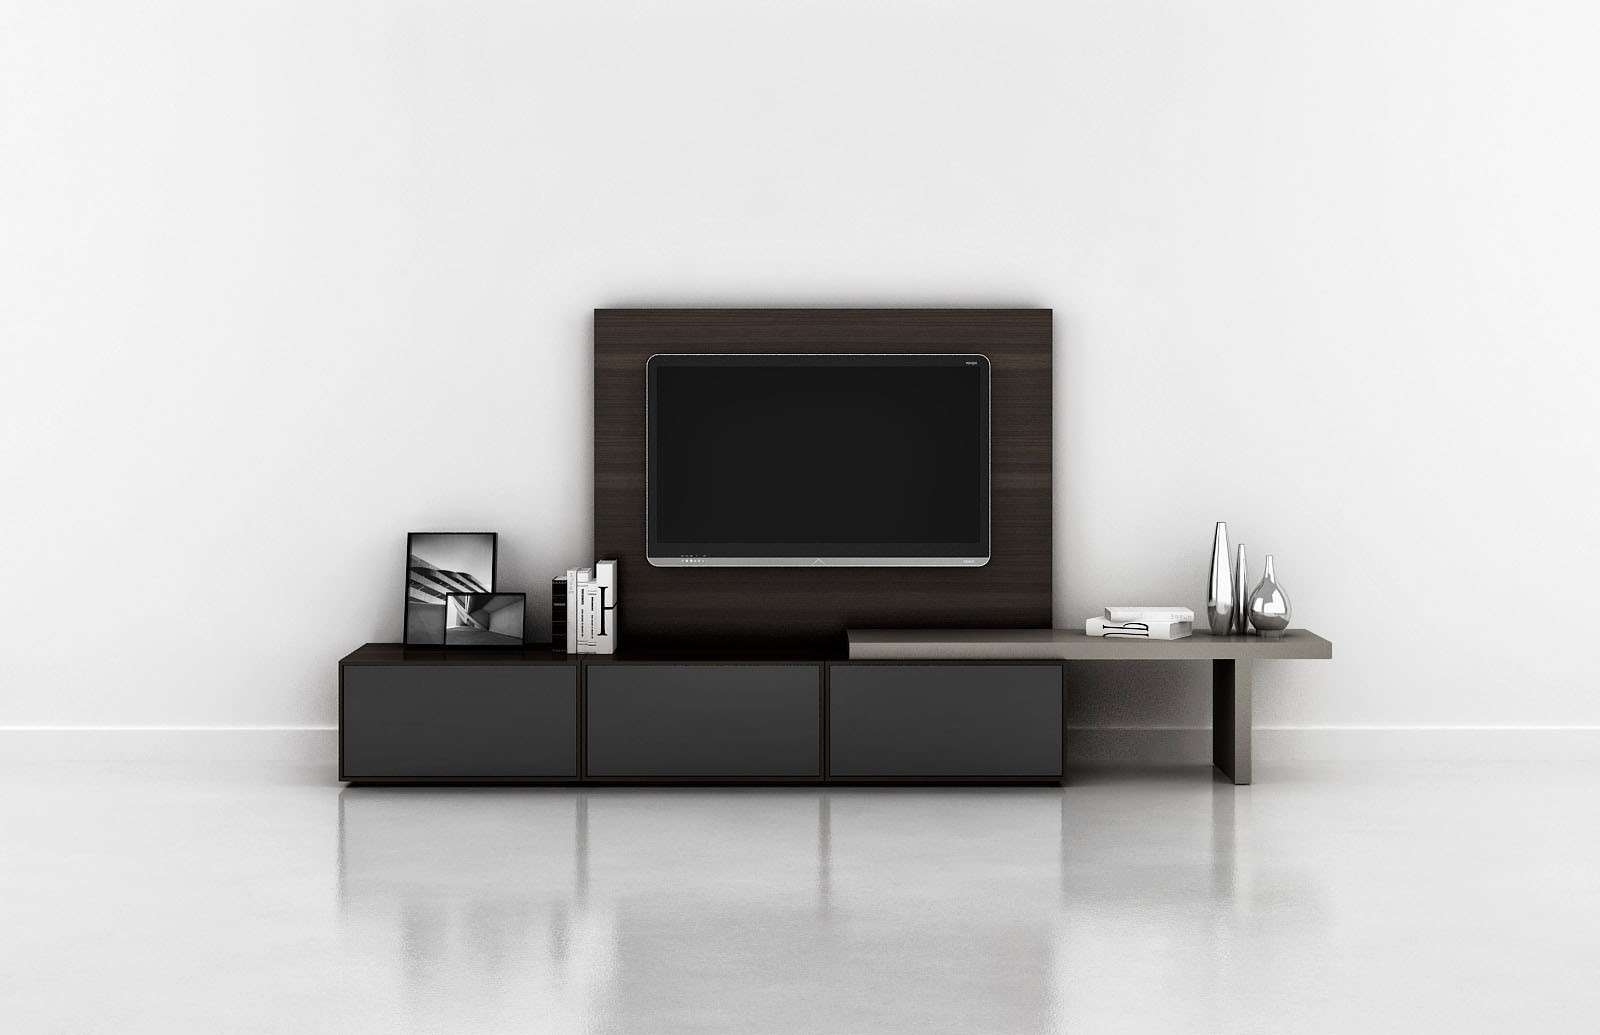 Bedroom. Stylish Tv Stand Designs For Contemporary Bedroom (View 10 of 20)